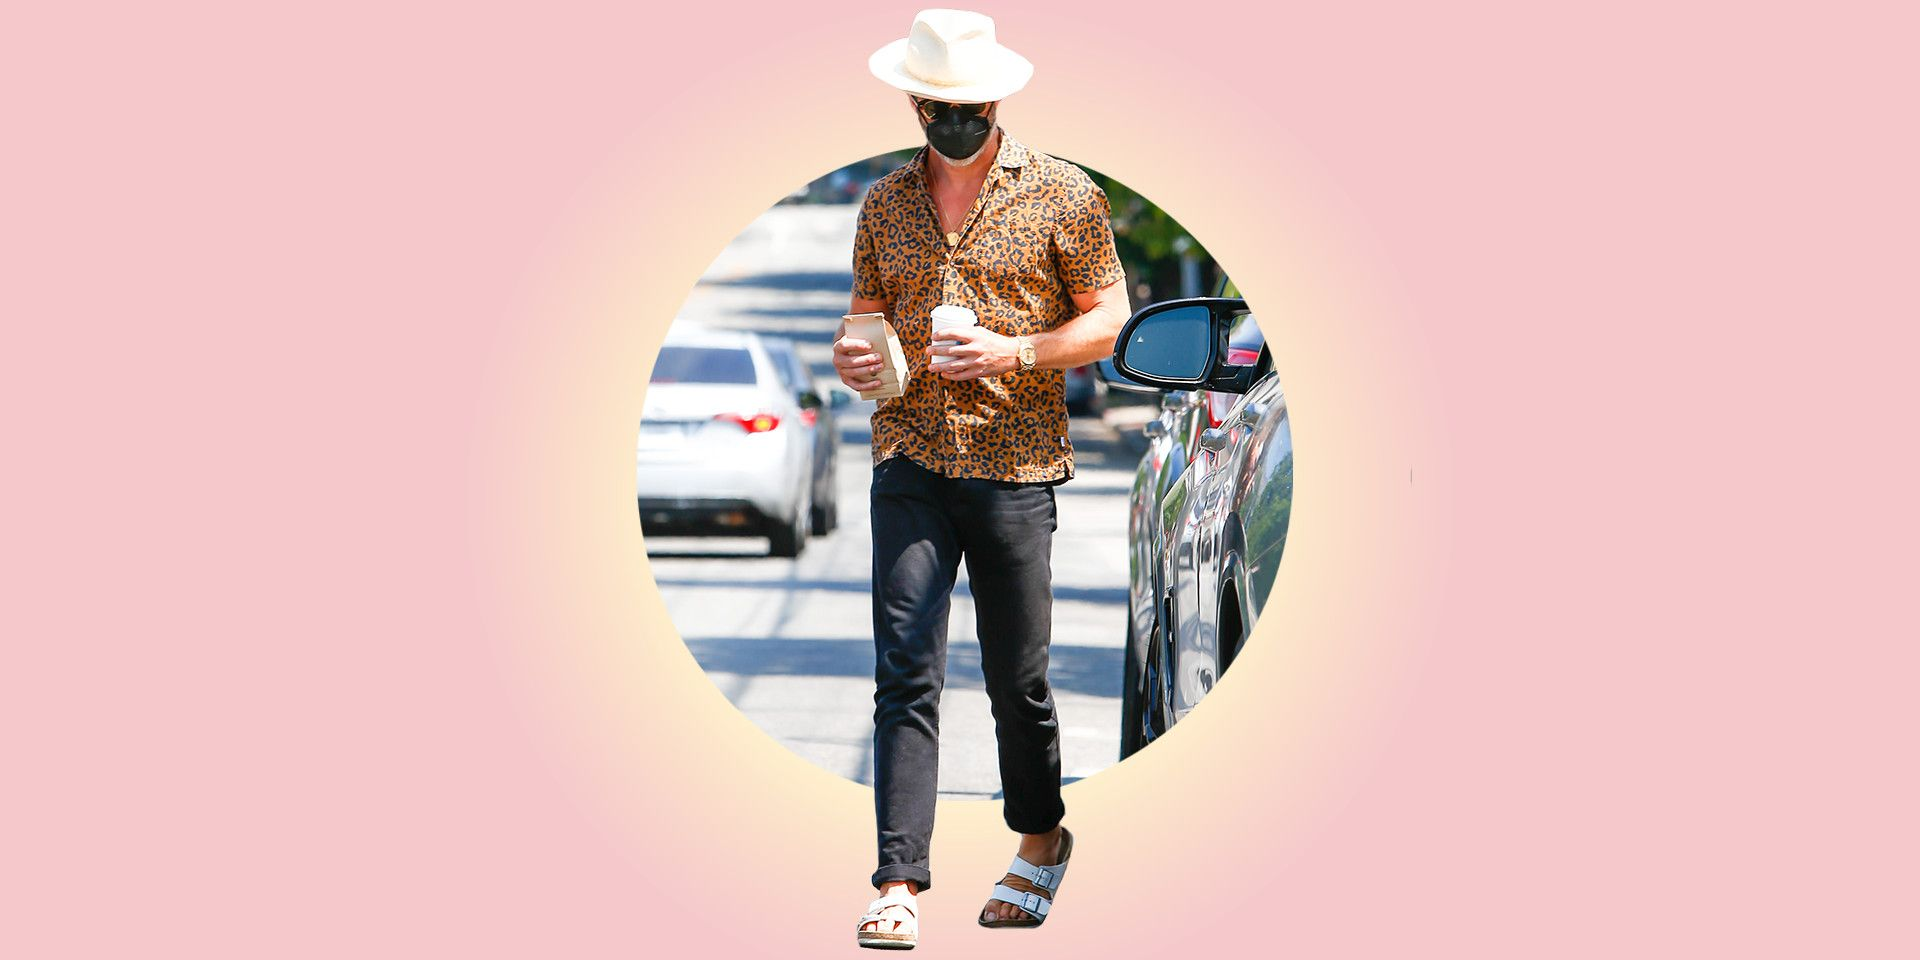 Chris Pine, the People's Chris, Is Back at it Again With the White Birks (and a Leopard-Print Shirt)